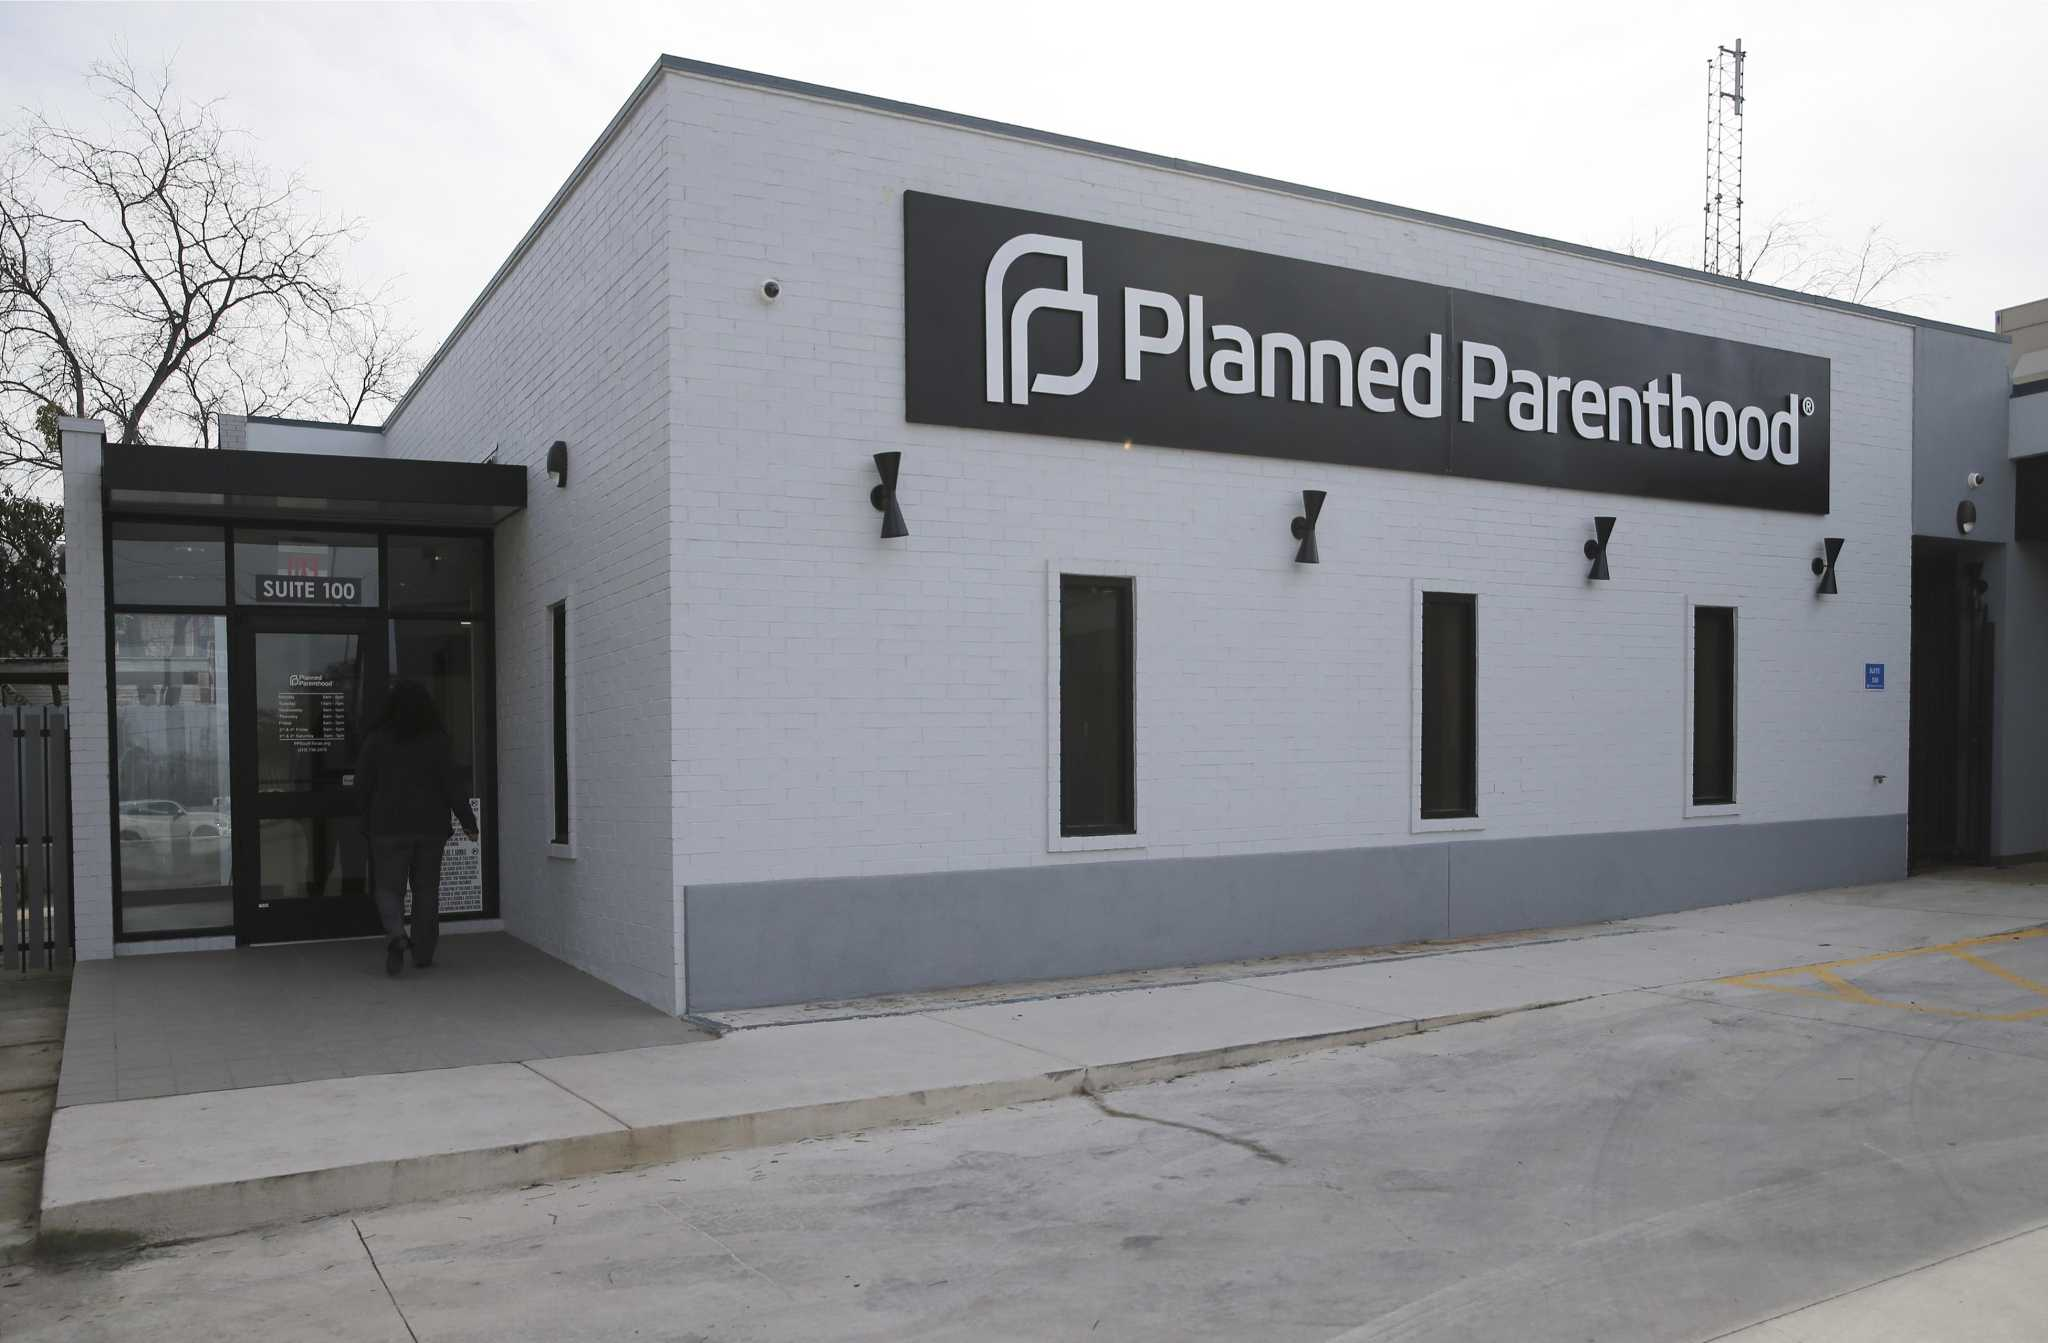 San Antonio's Planned Parenthood clinics have already taken Title X funding hit